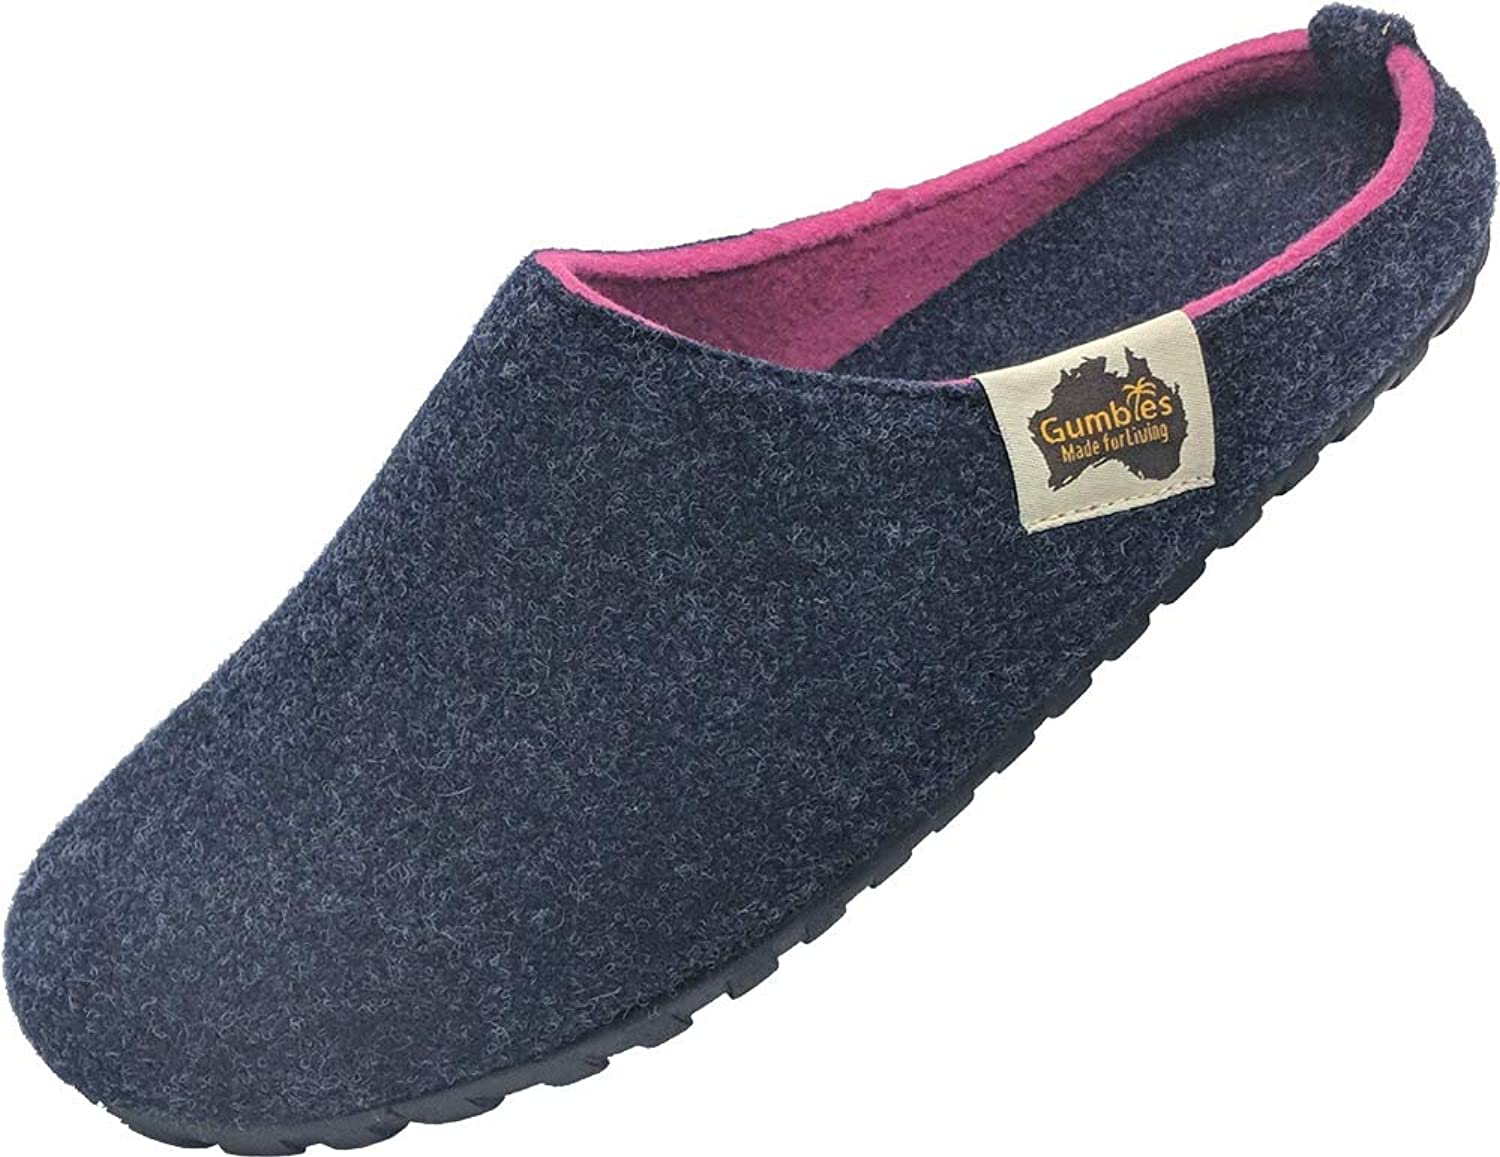 Gumbies - Outback Slipper - Navy & Pink